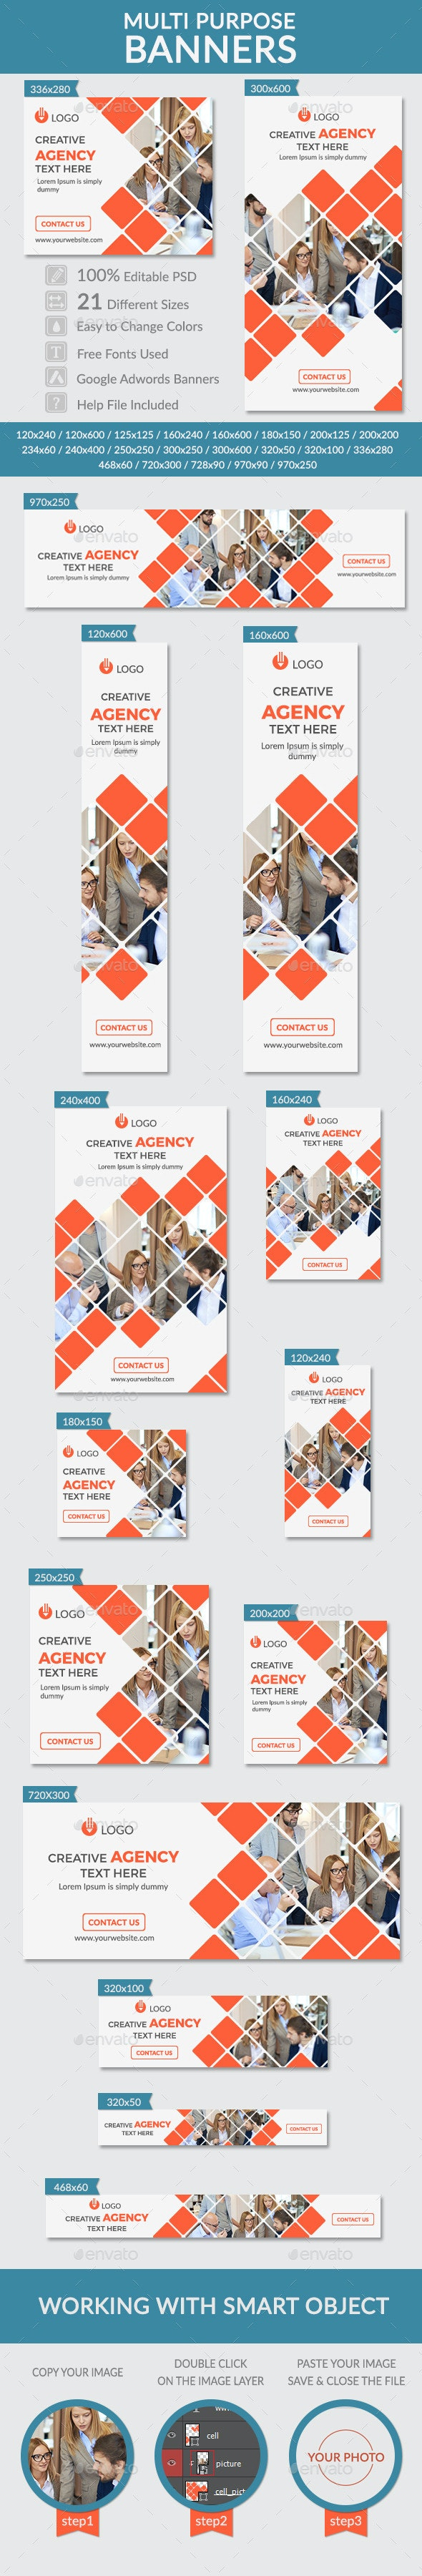 Multi Purpose Banners - Banners & Ads Web Elements